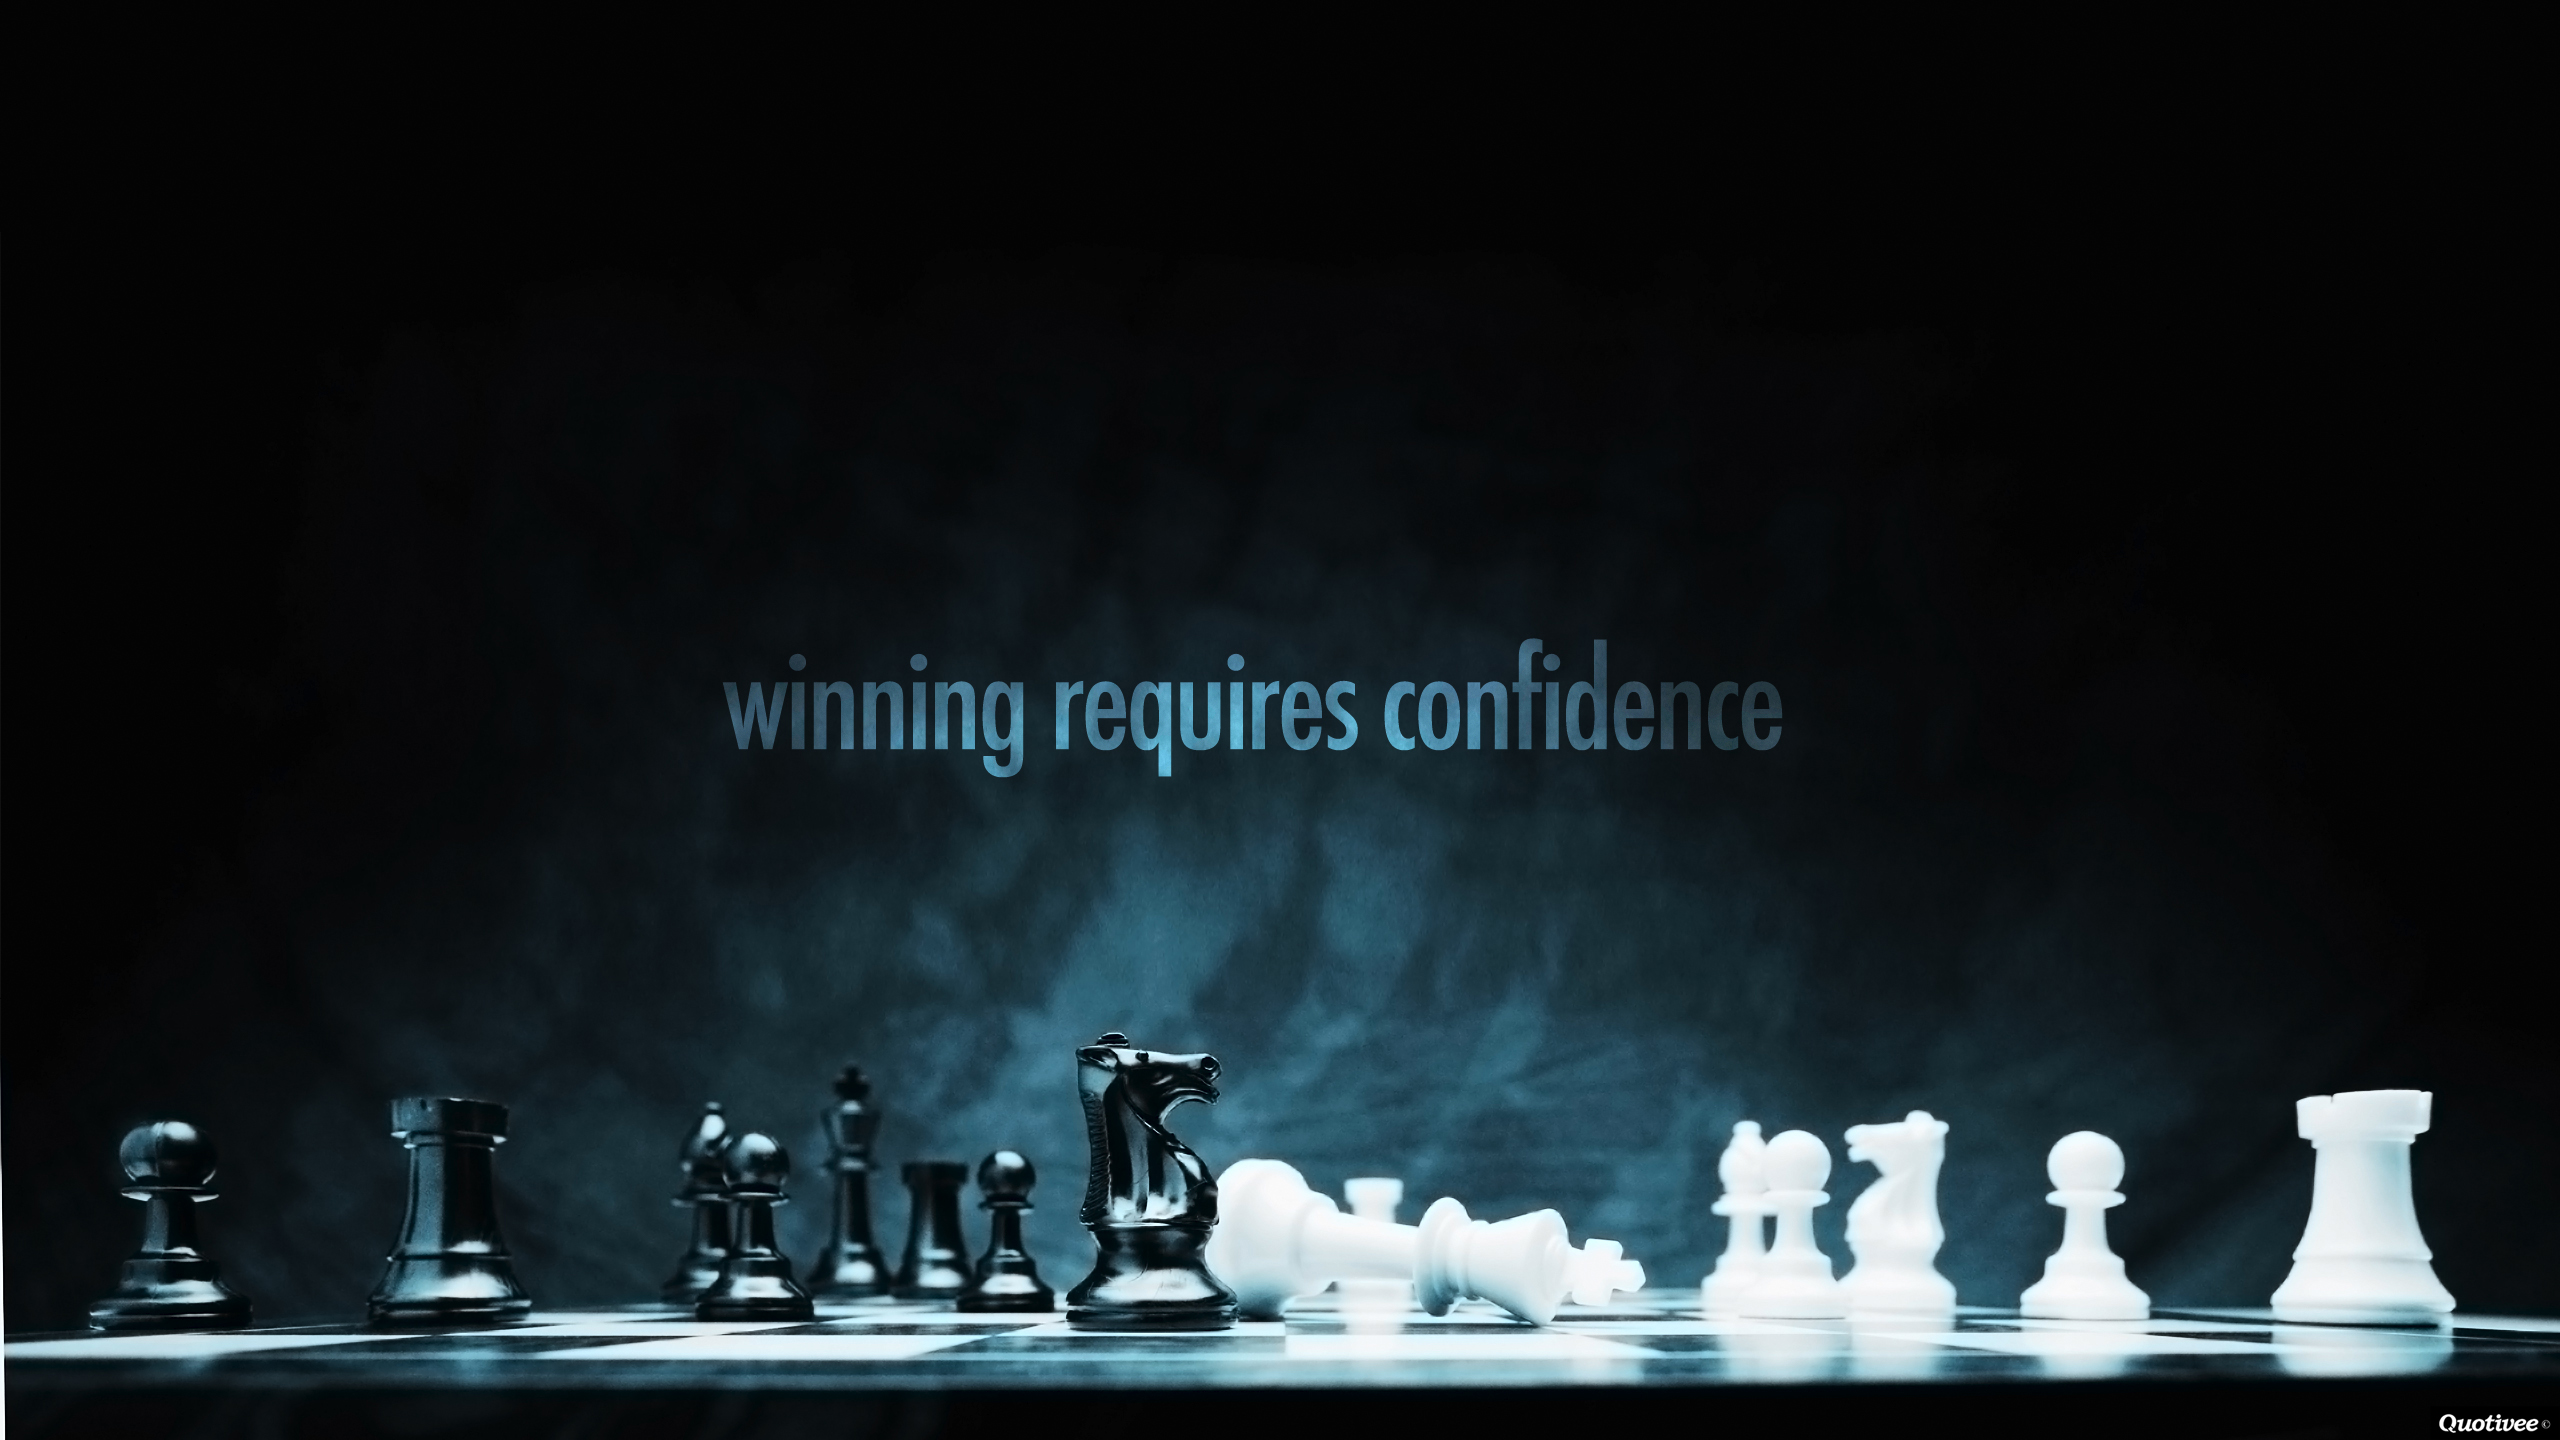 winning requires confidence - motivational quote wallpaper | quotivee